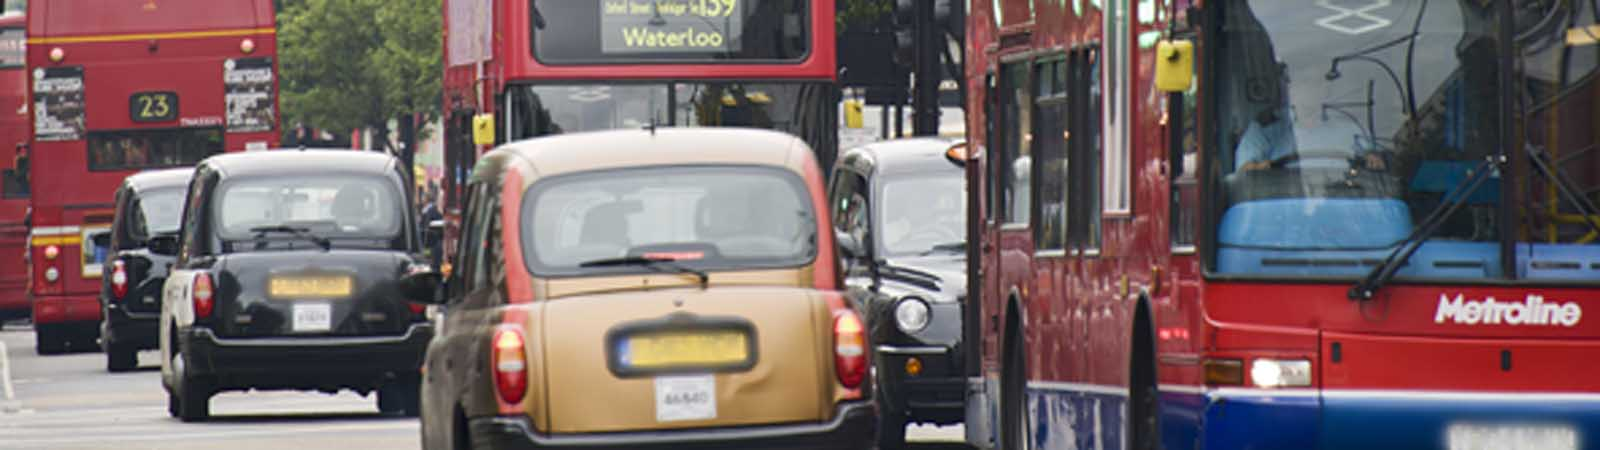 London taxis and buses in traffic